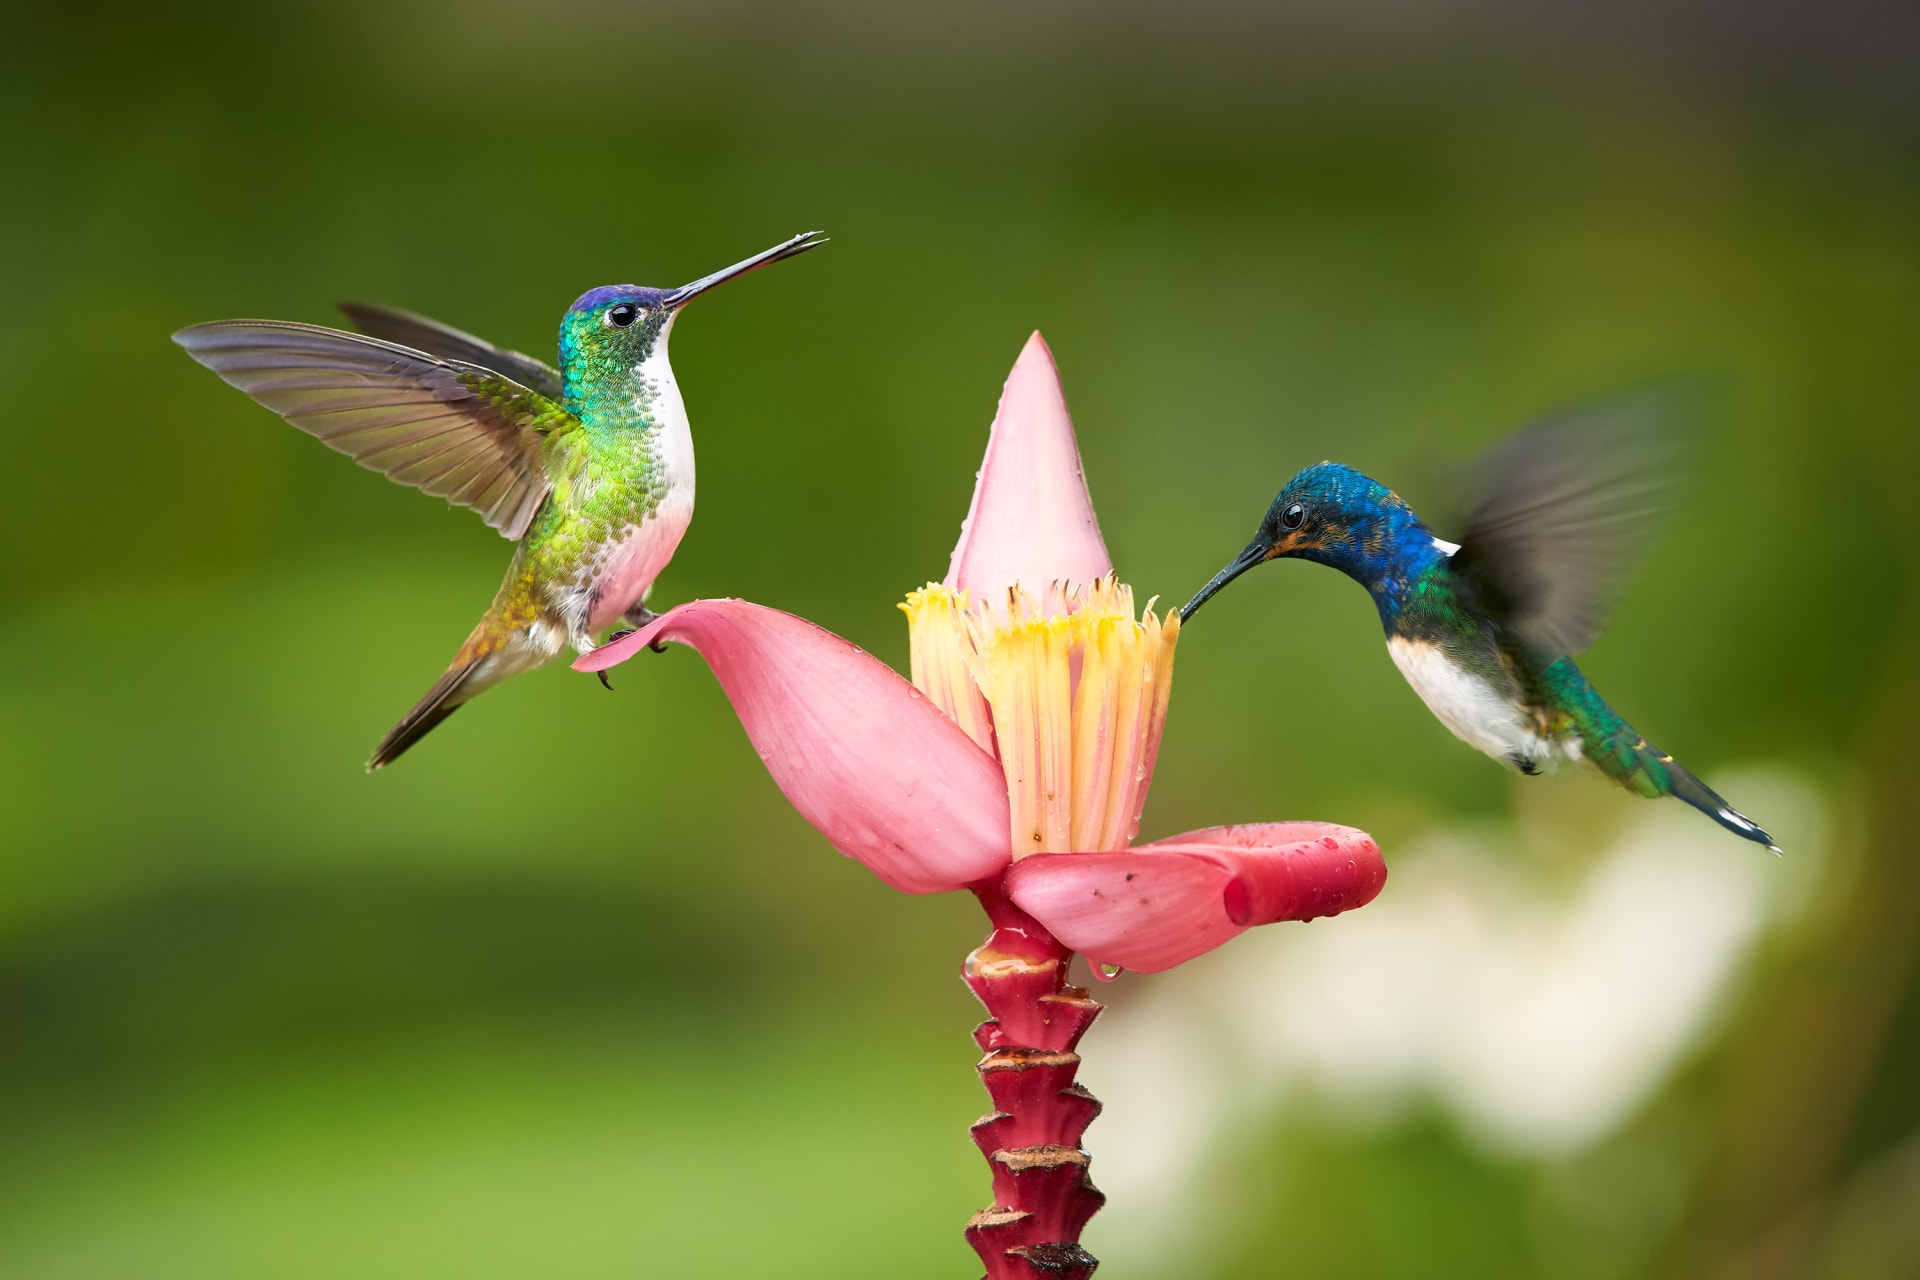 Mindo - ASMR Hummingbirds of the Cloud Forest